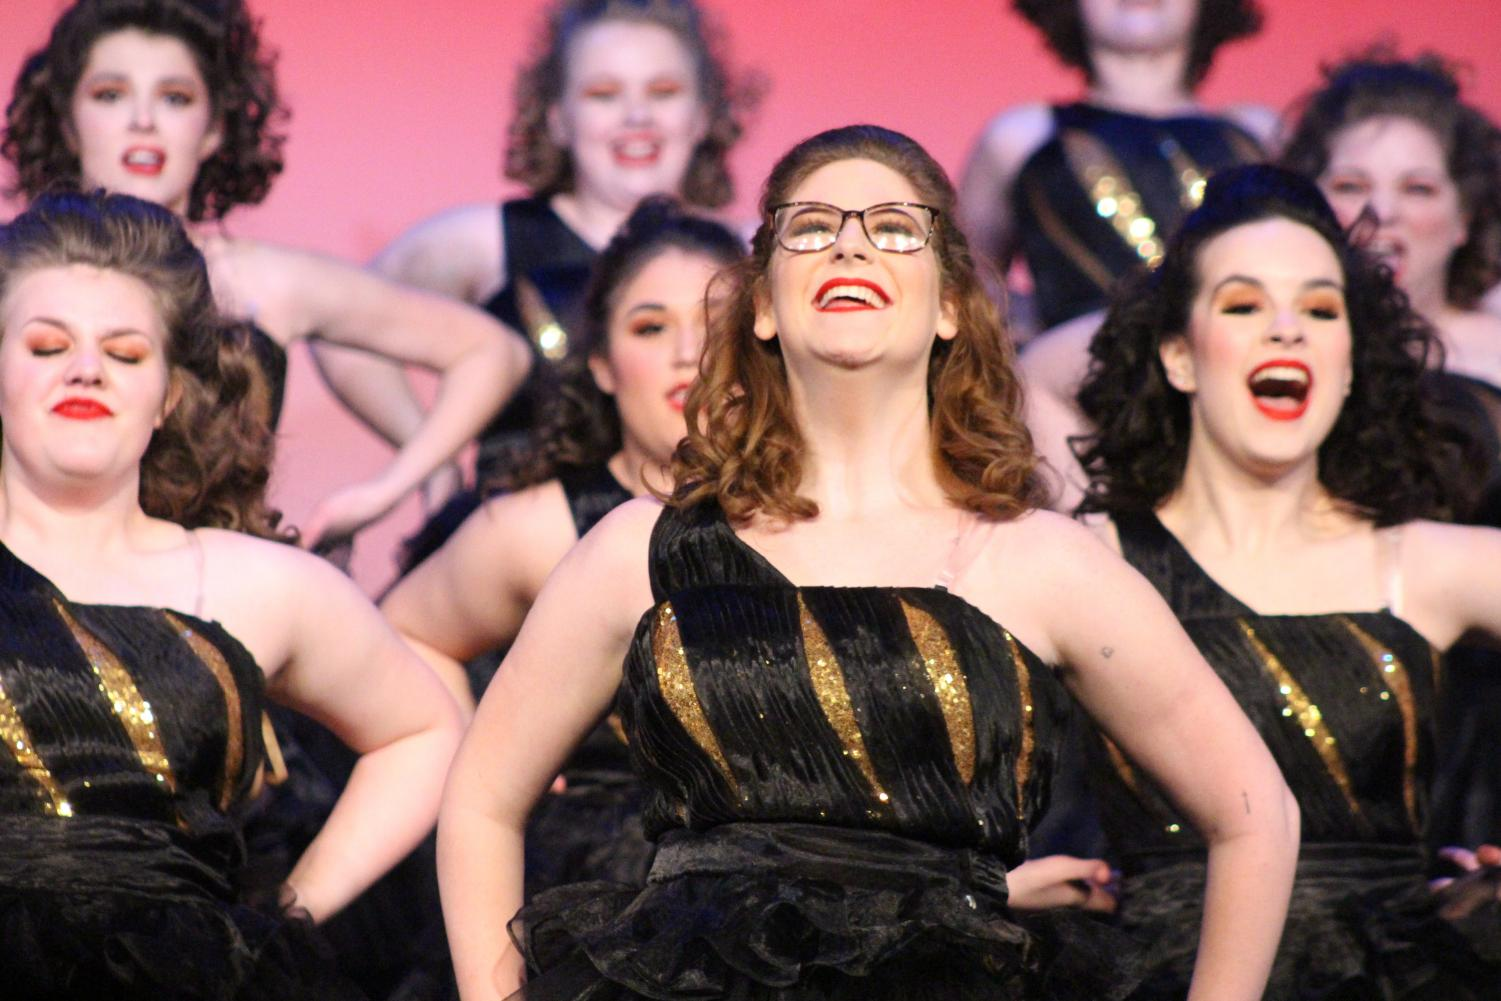 Senior Emily Shultz smiles while performing with Tiger Rhythm at the Broken Arrow Performing Arts Center.